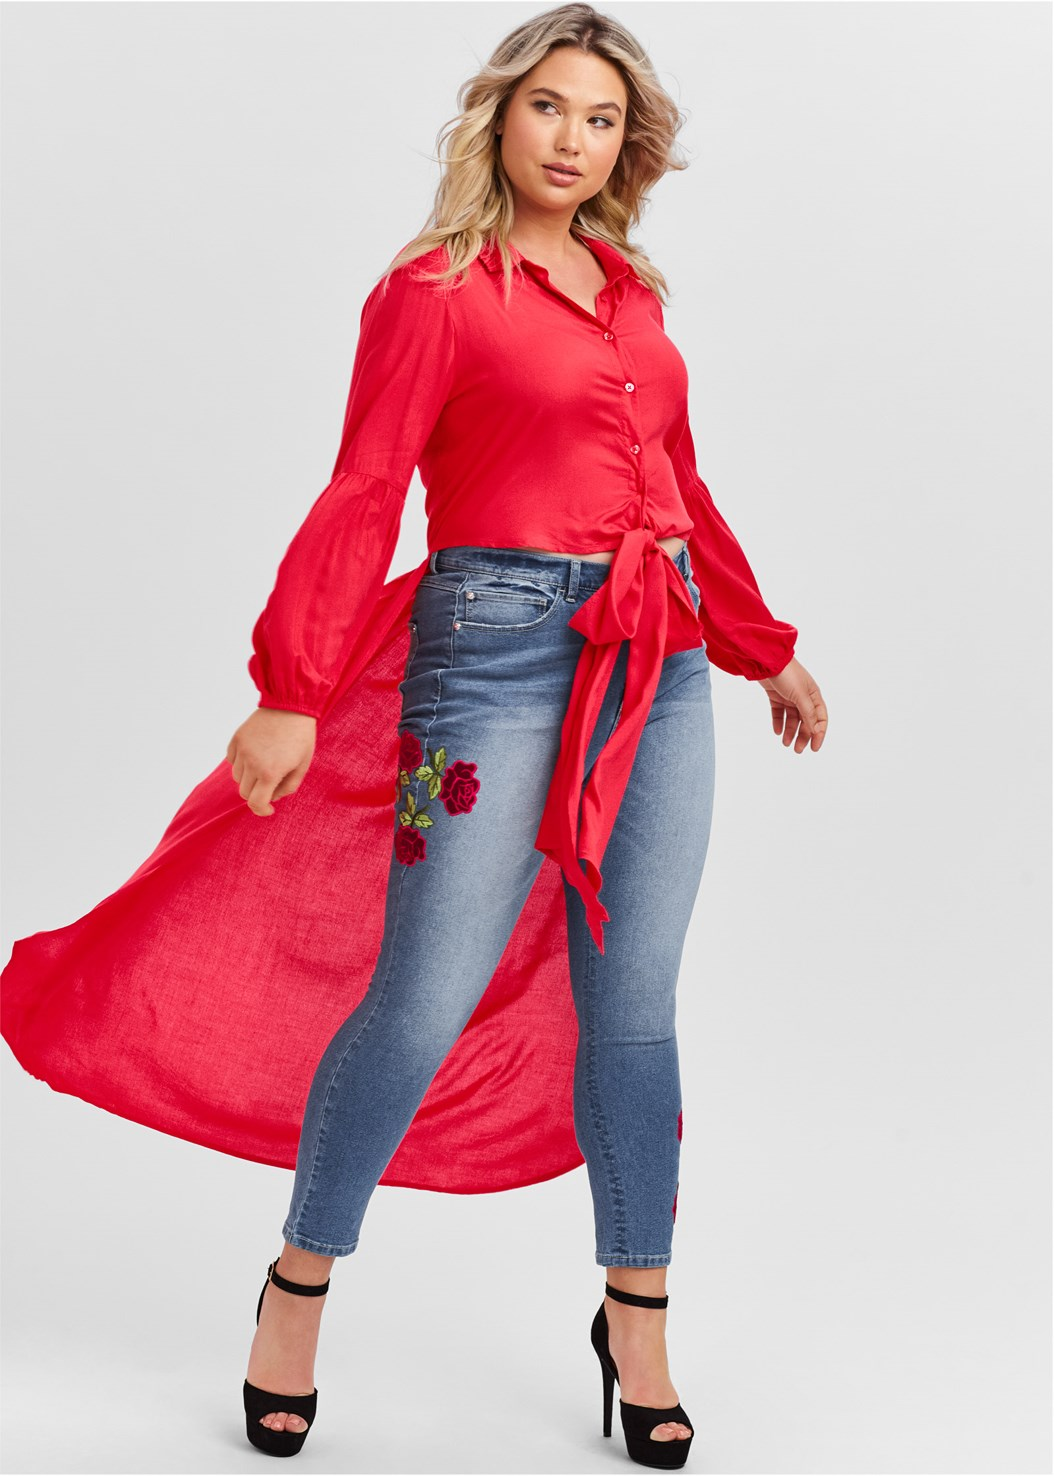 Tie Front High Low Top,Rose Embroidered Jeans,Mid Rise Color Skinny Jeans